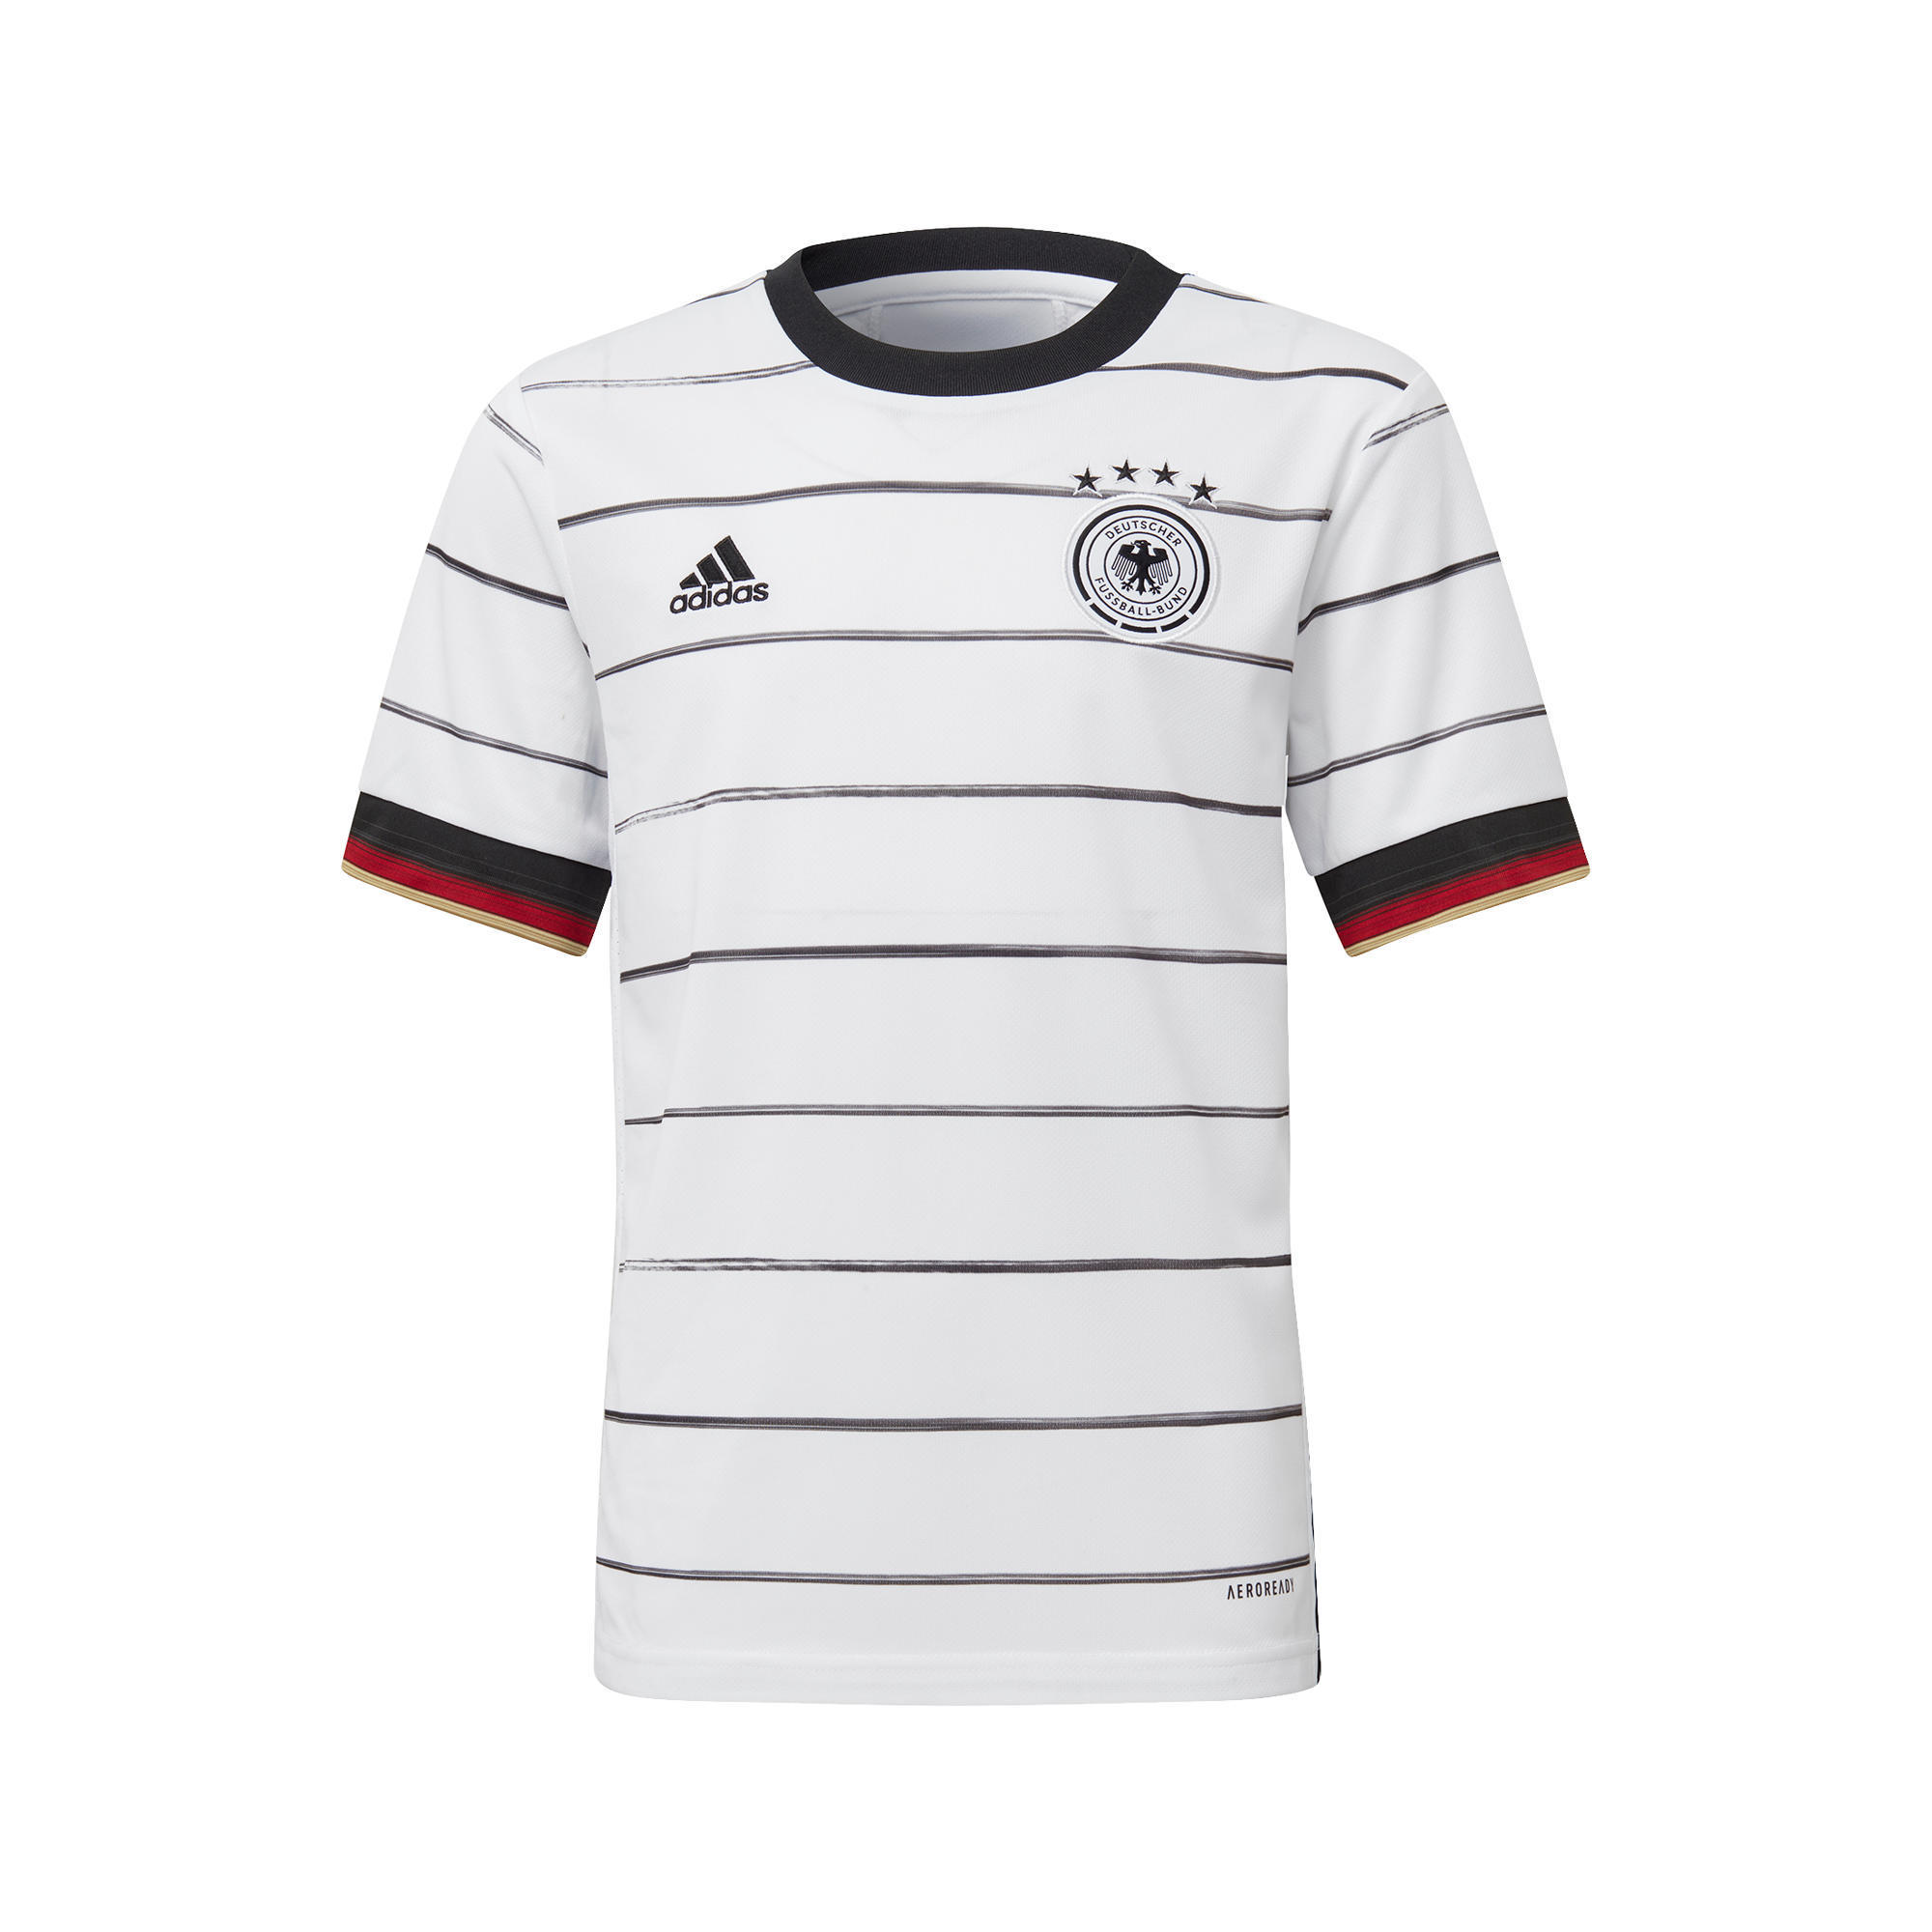 Maillot adidas replica allemagne home enfant 2020 adidas chez Decathlon